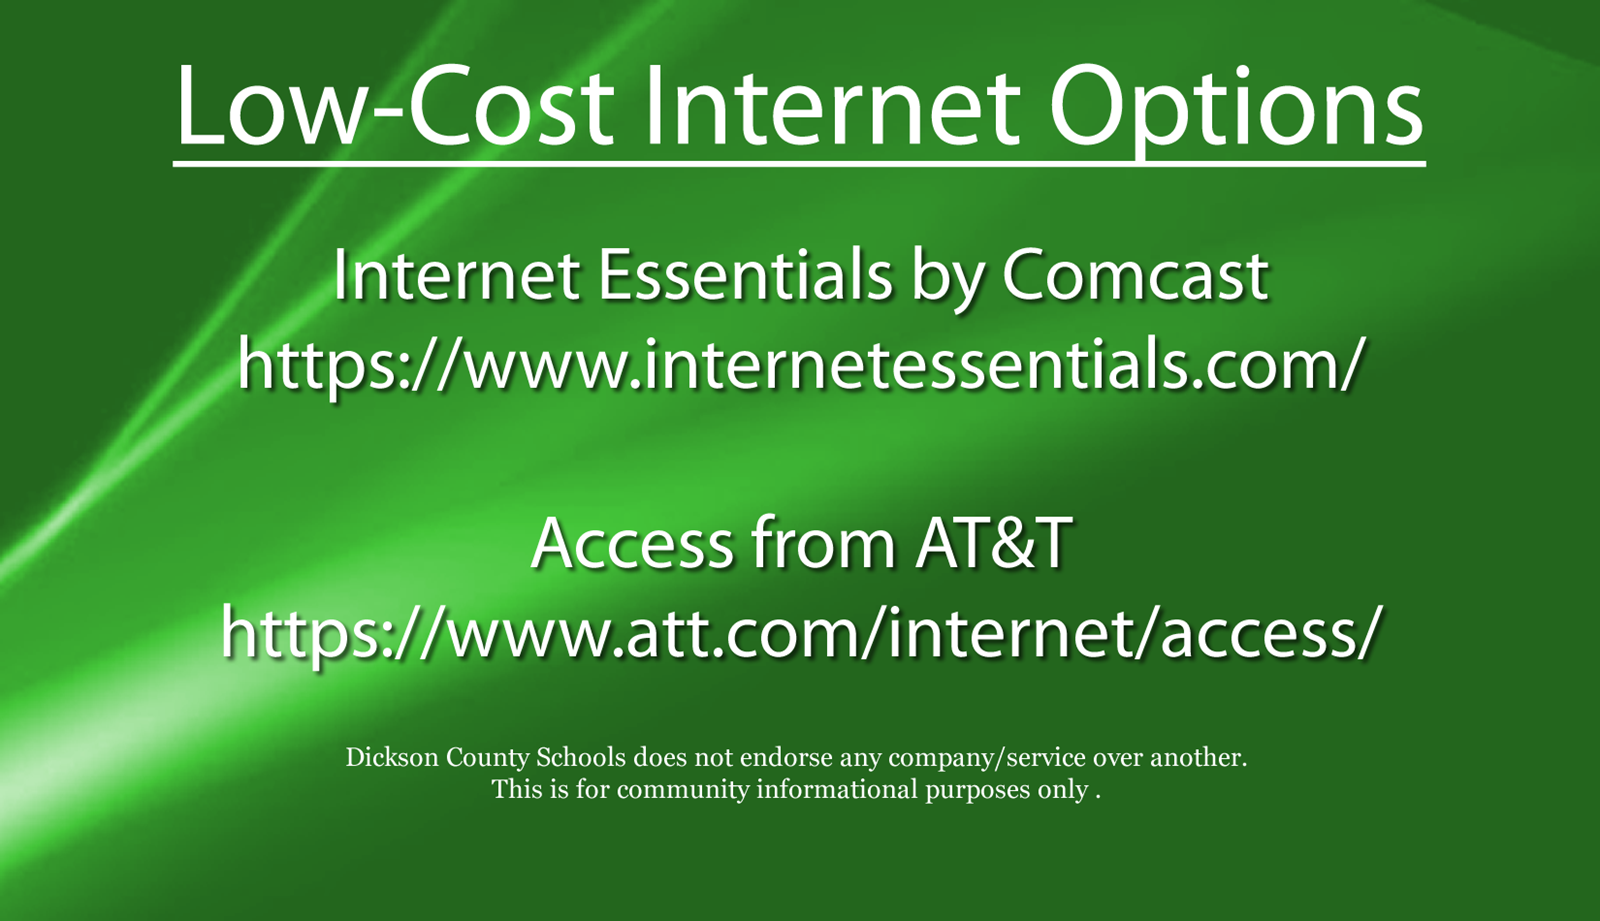 Low-Cost Internet Options